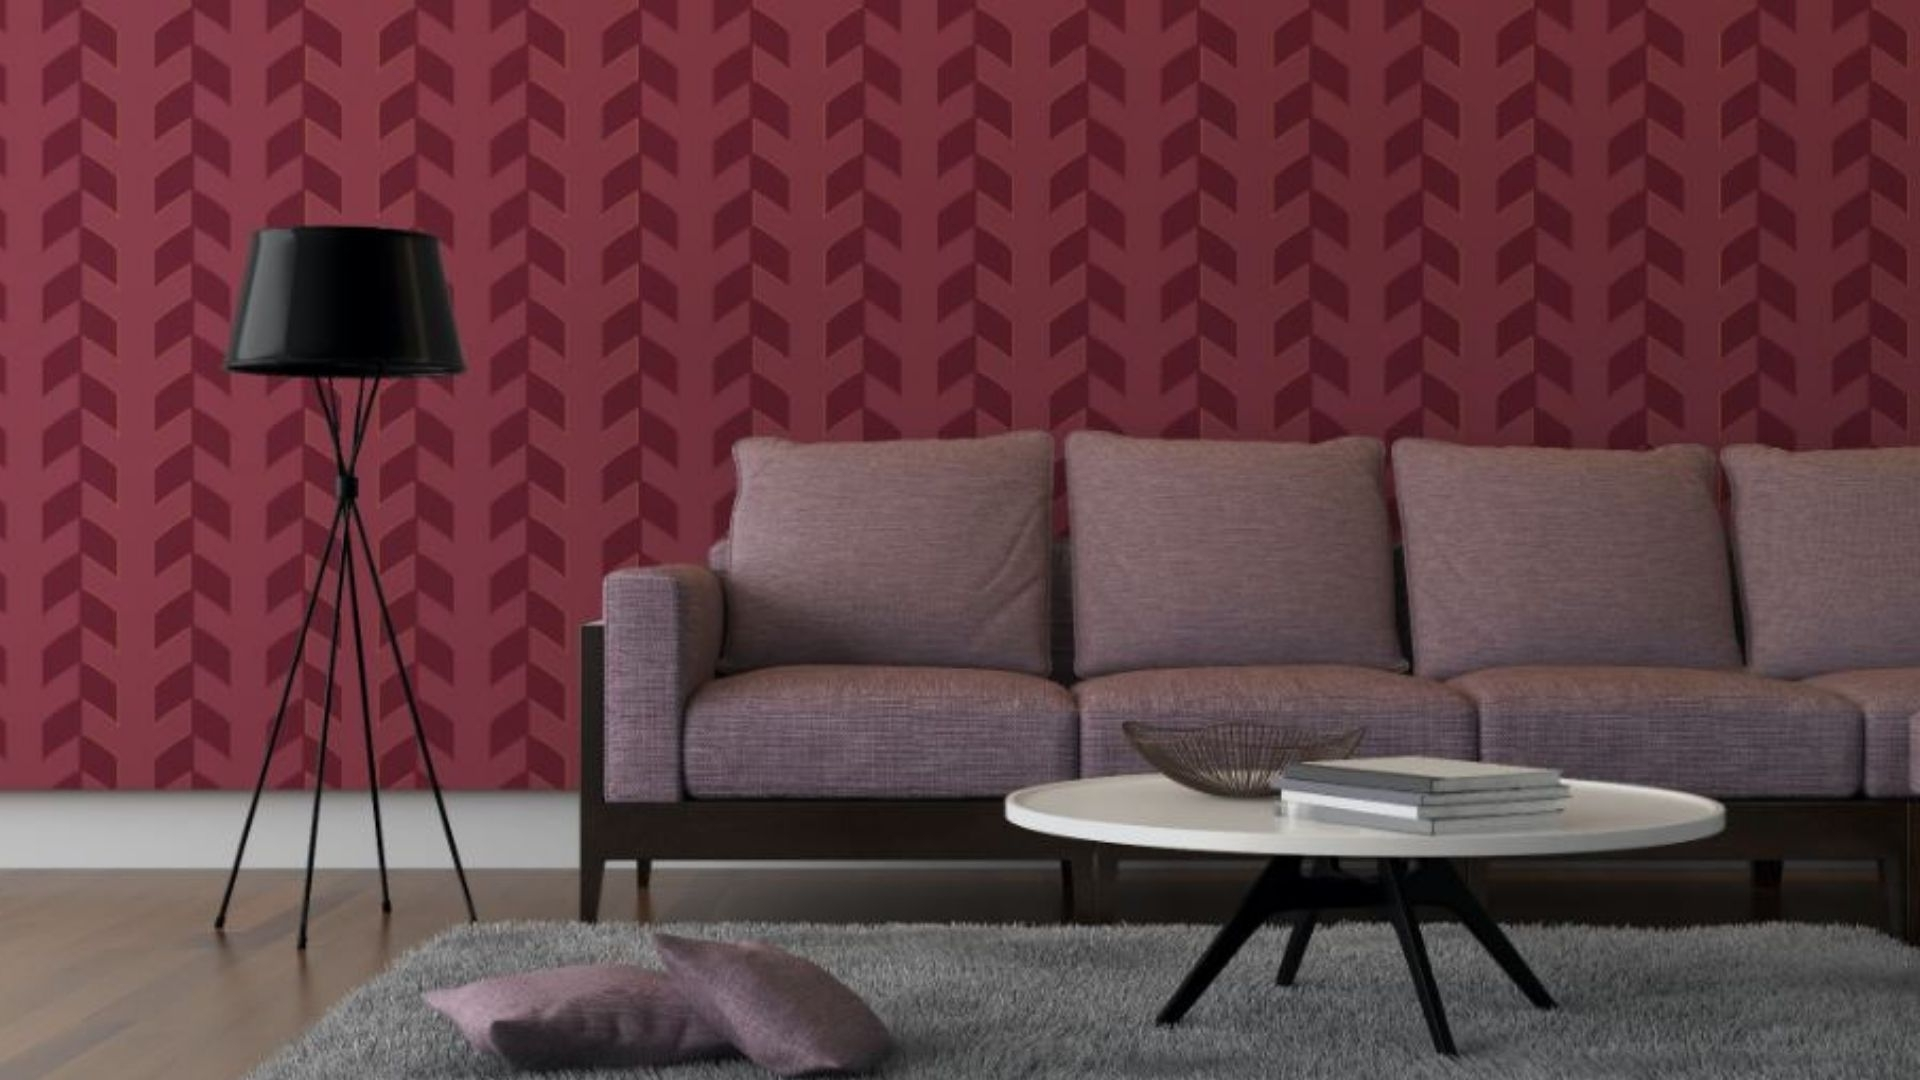 9 Asian Paints Wallpaper Designs For A Stunning Feature Wall 30+ Asian Paints Model Living Room Pictures Inspirations